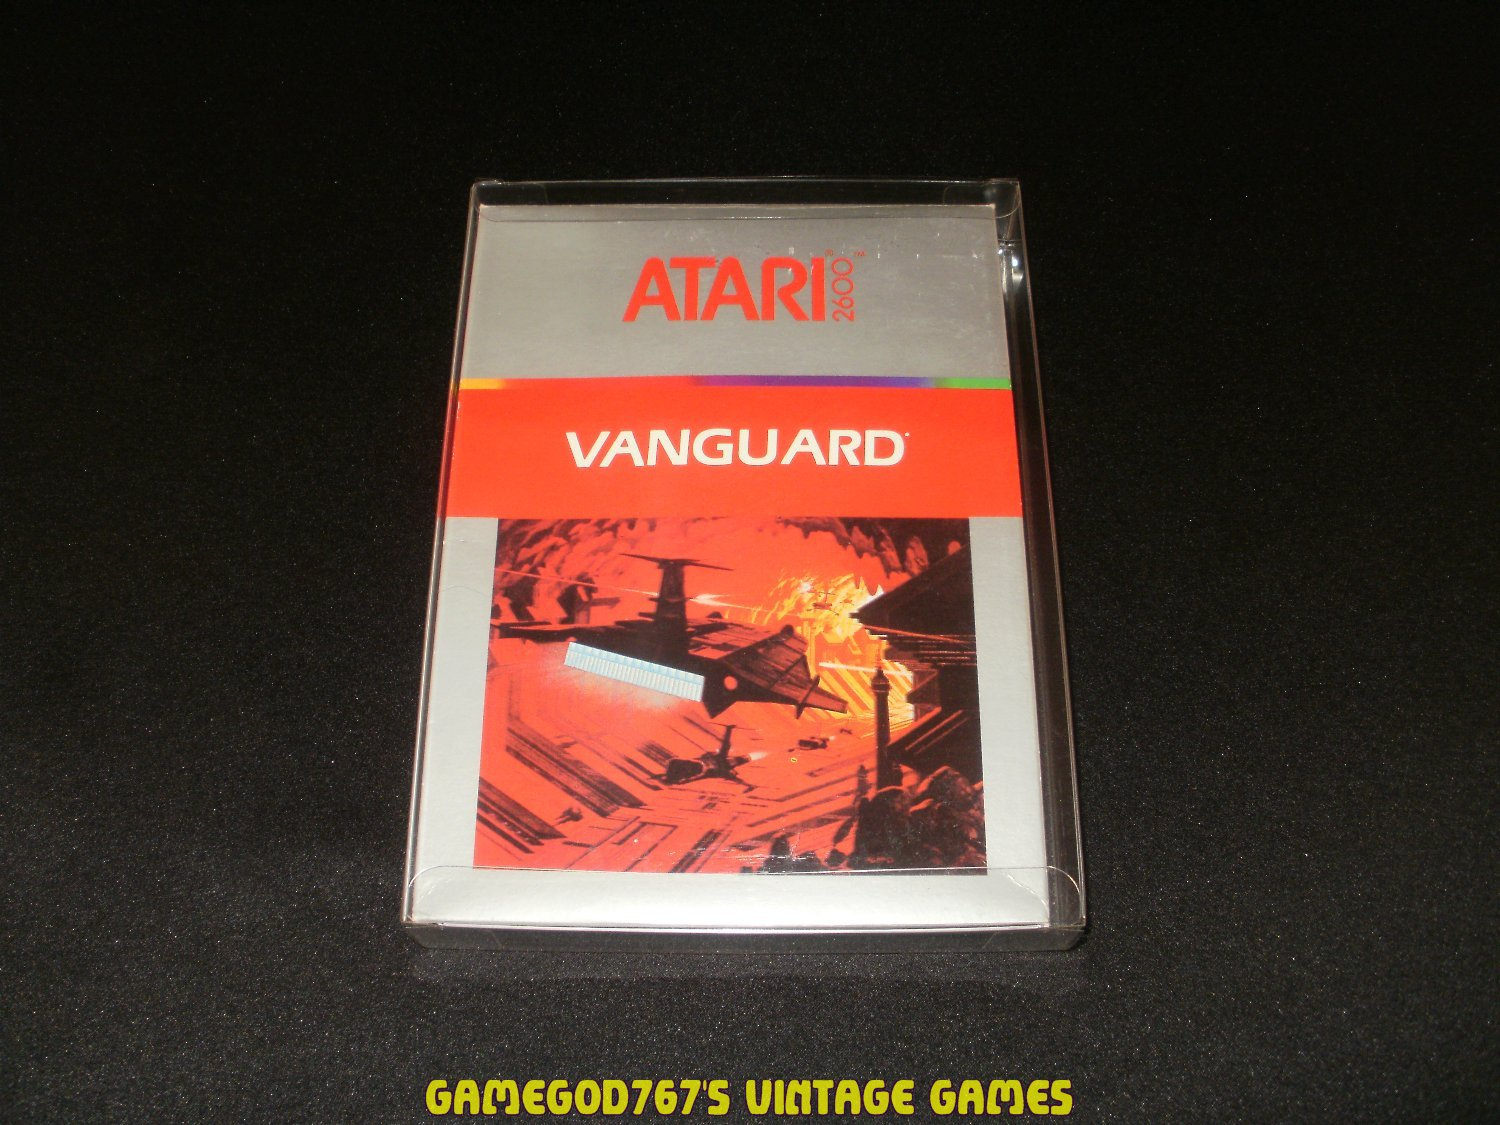 Vanguard - Atari 2600 - Complete CIB - With Box Protector